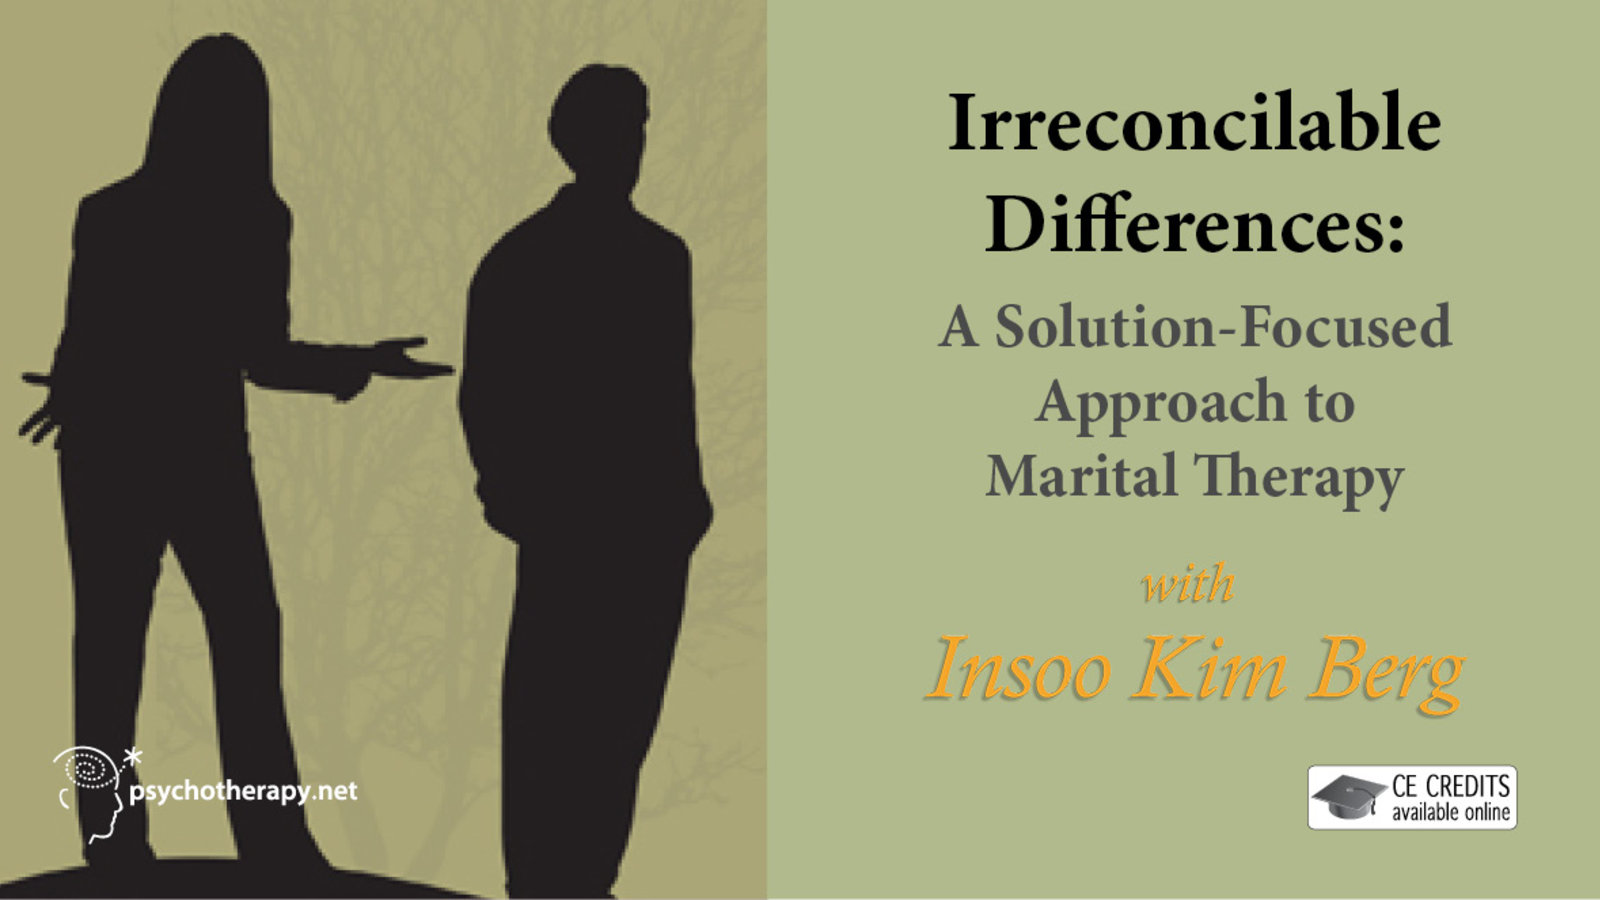 Irreconcilable Differences - A Solution-Focused Approach to Marital Therapy with Insoo Kim Berg